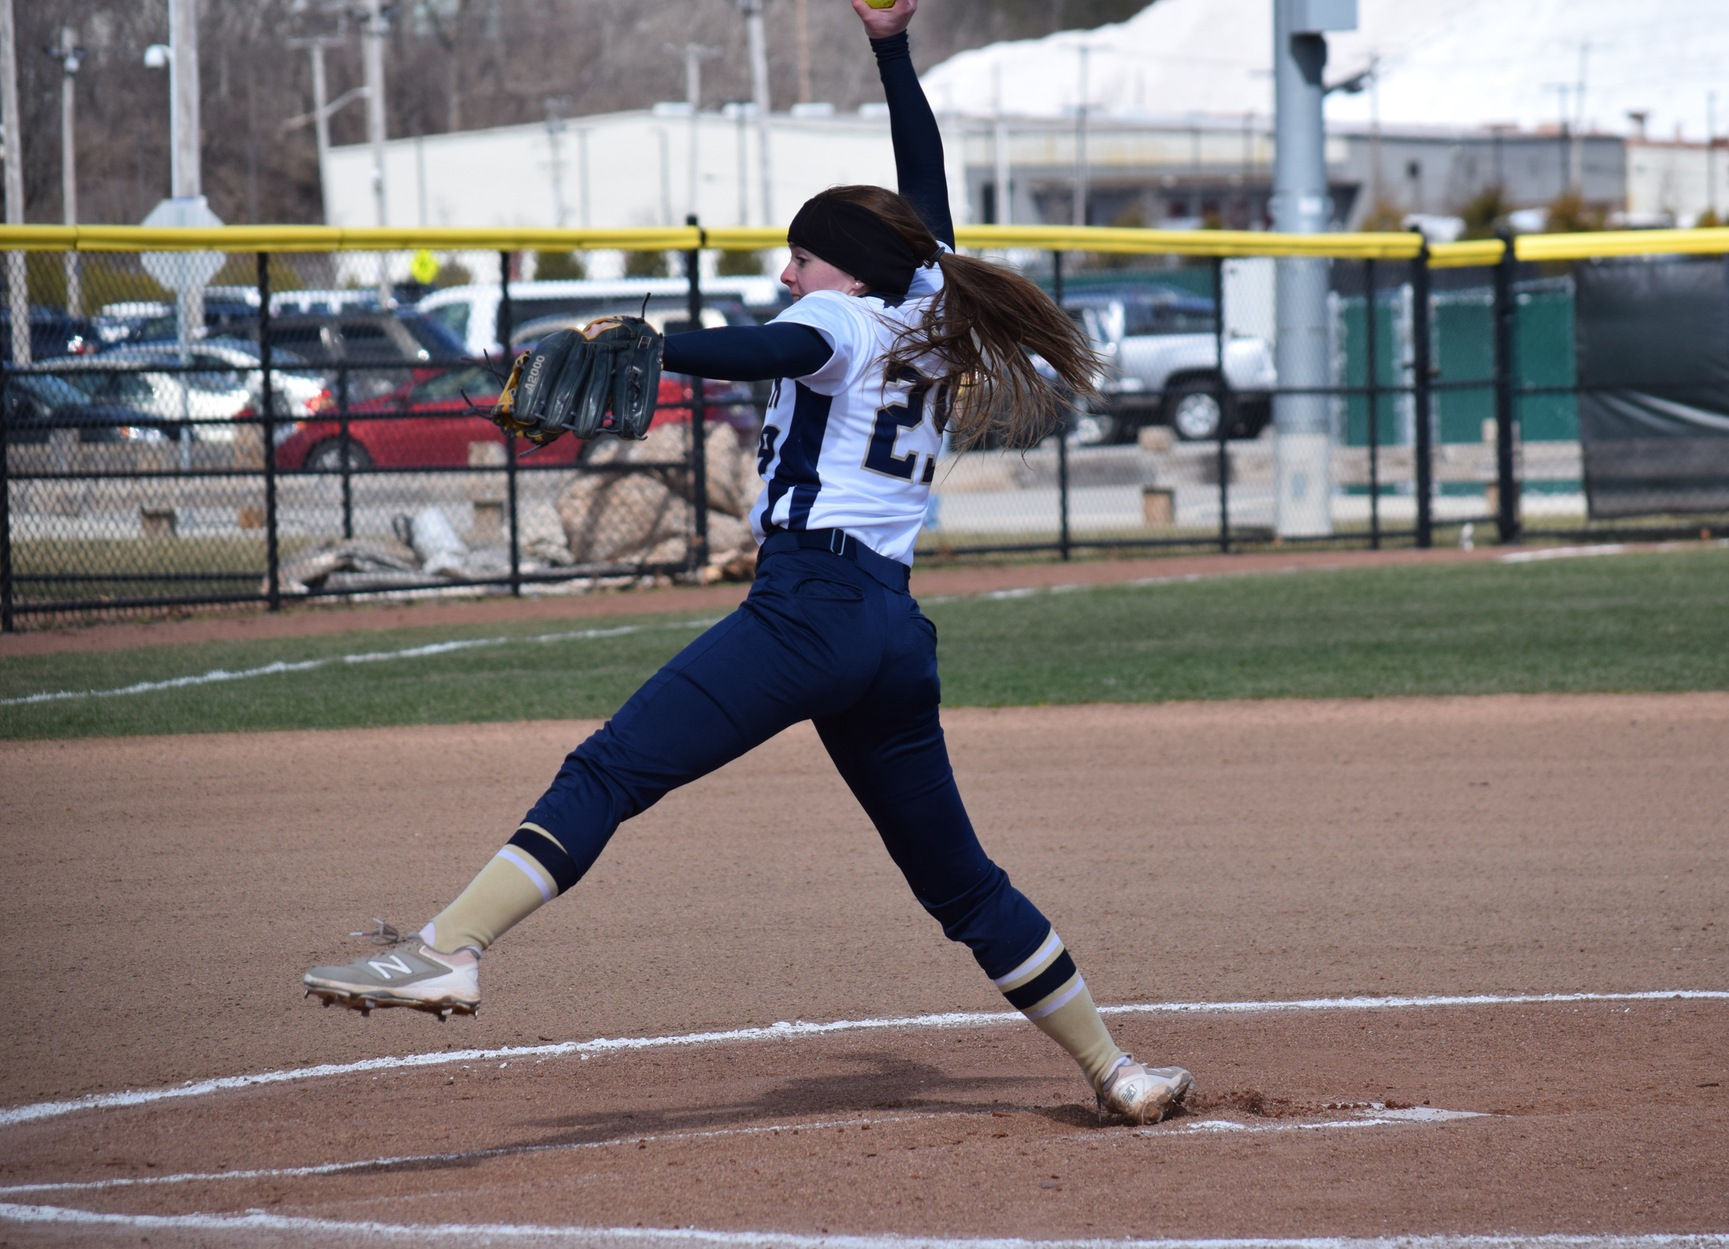 Splitsville: Norwich Grabs Game One, Softball Shutouts Game Two